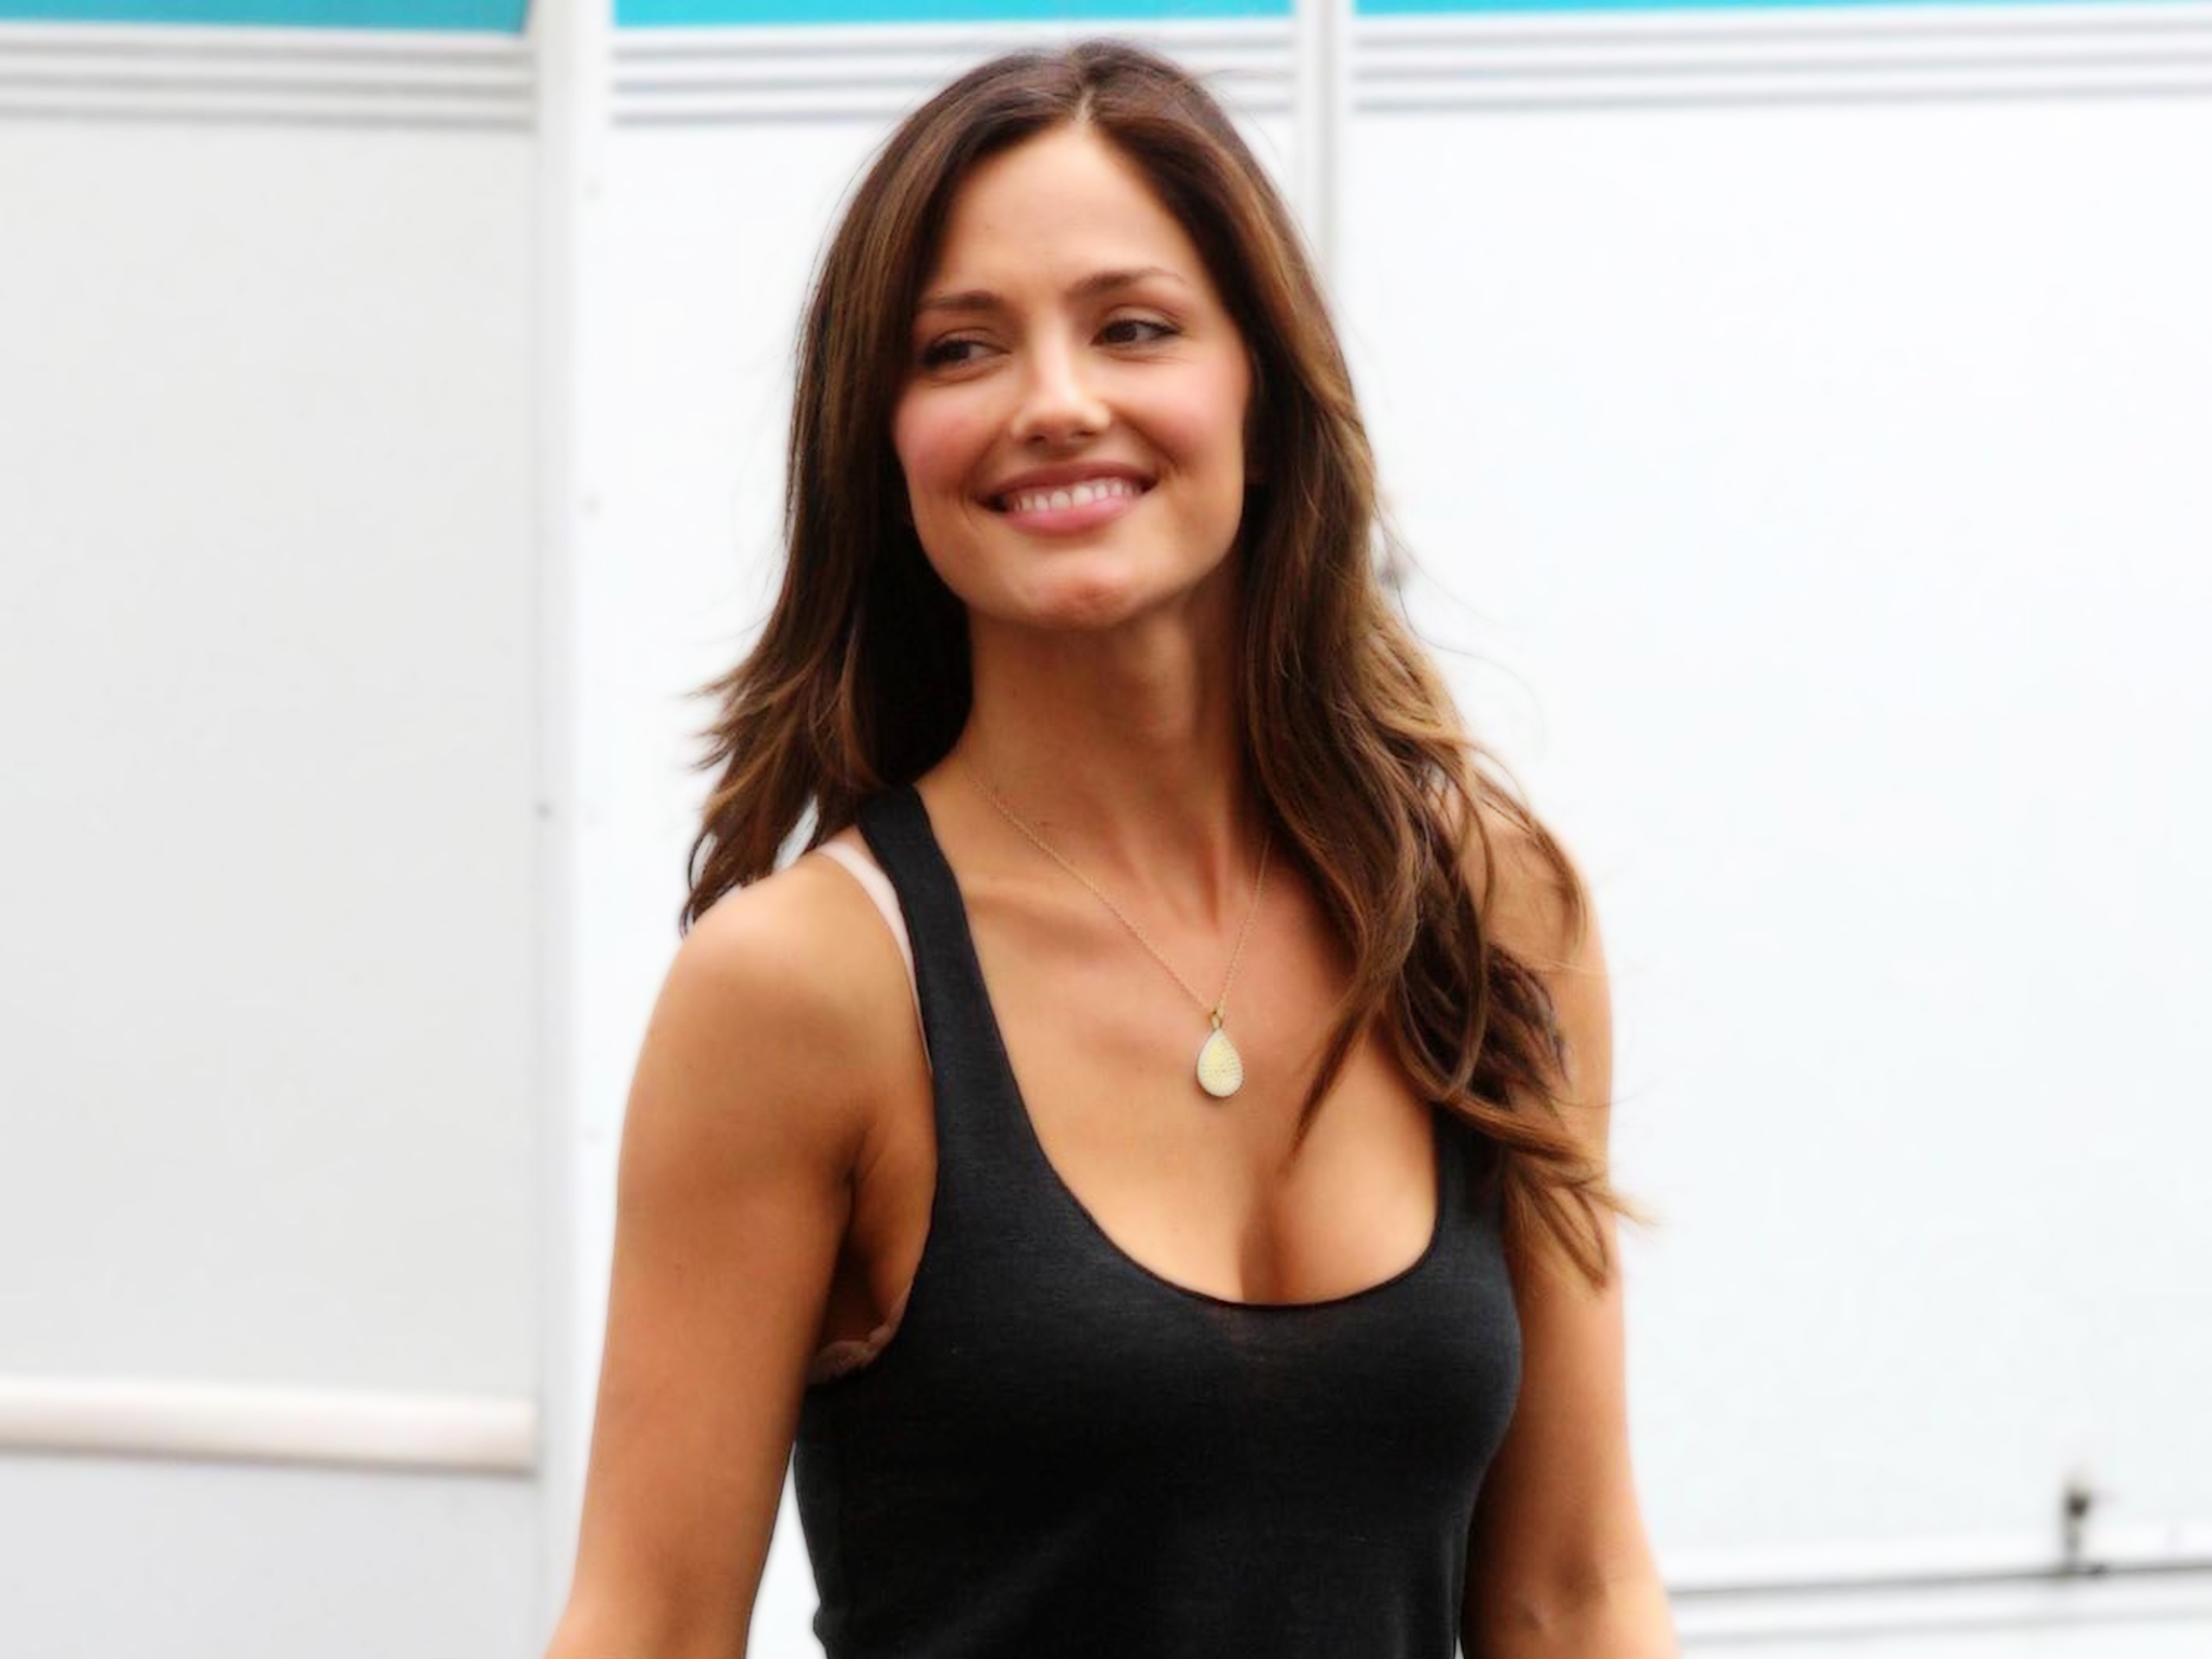 Minka Kelly Hd Wallpapers For Desktop Download